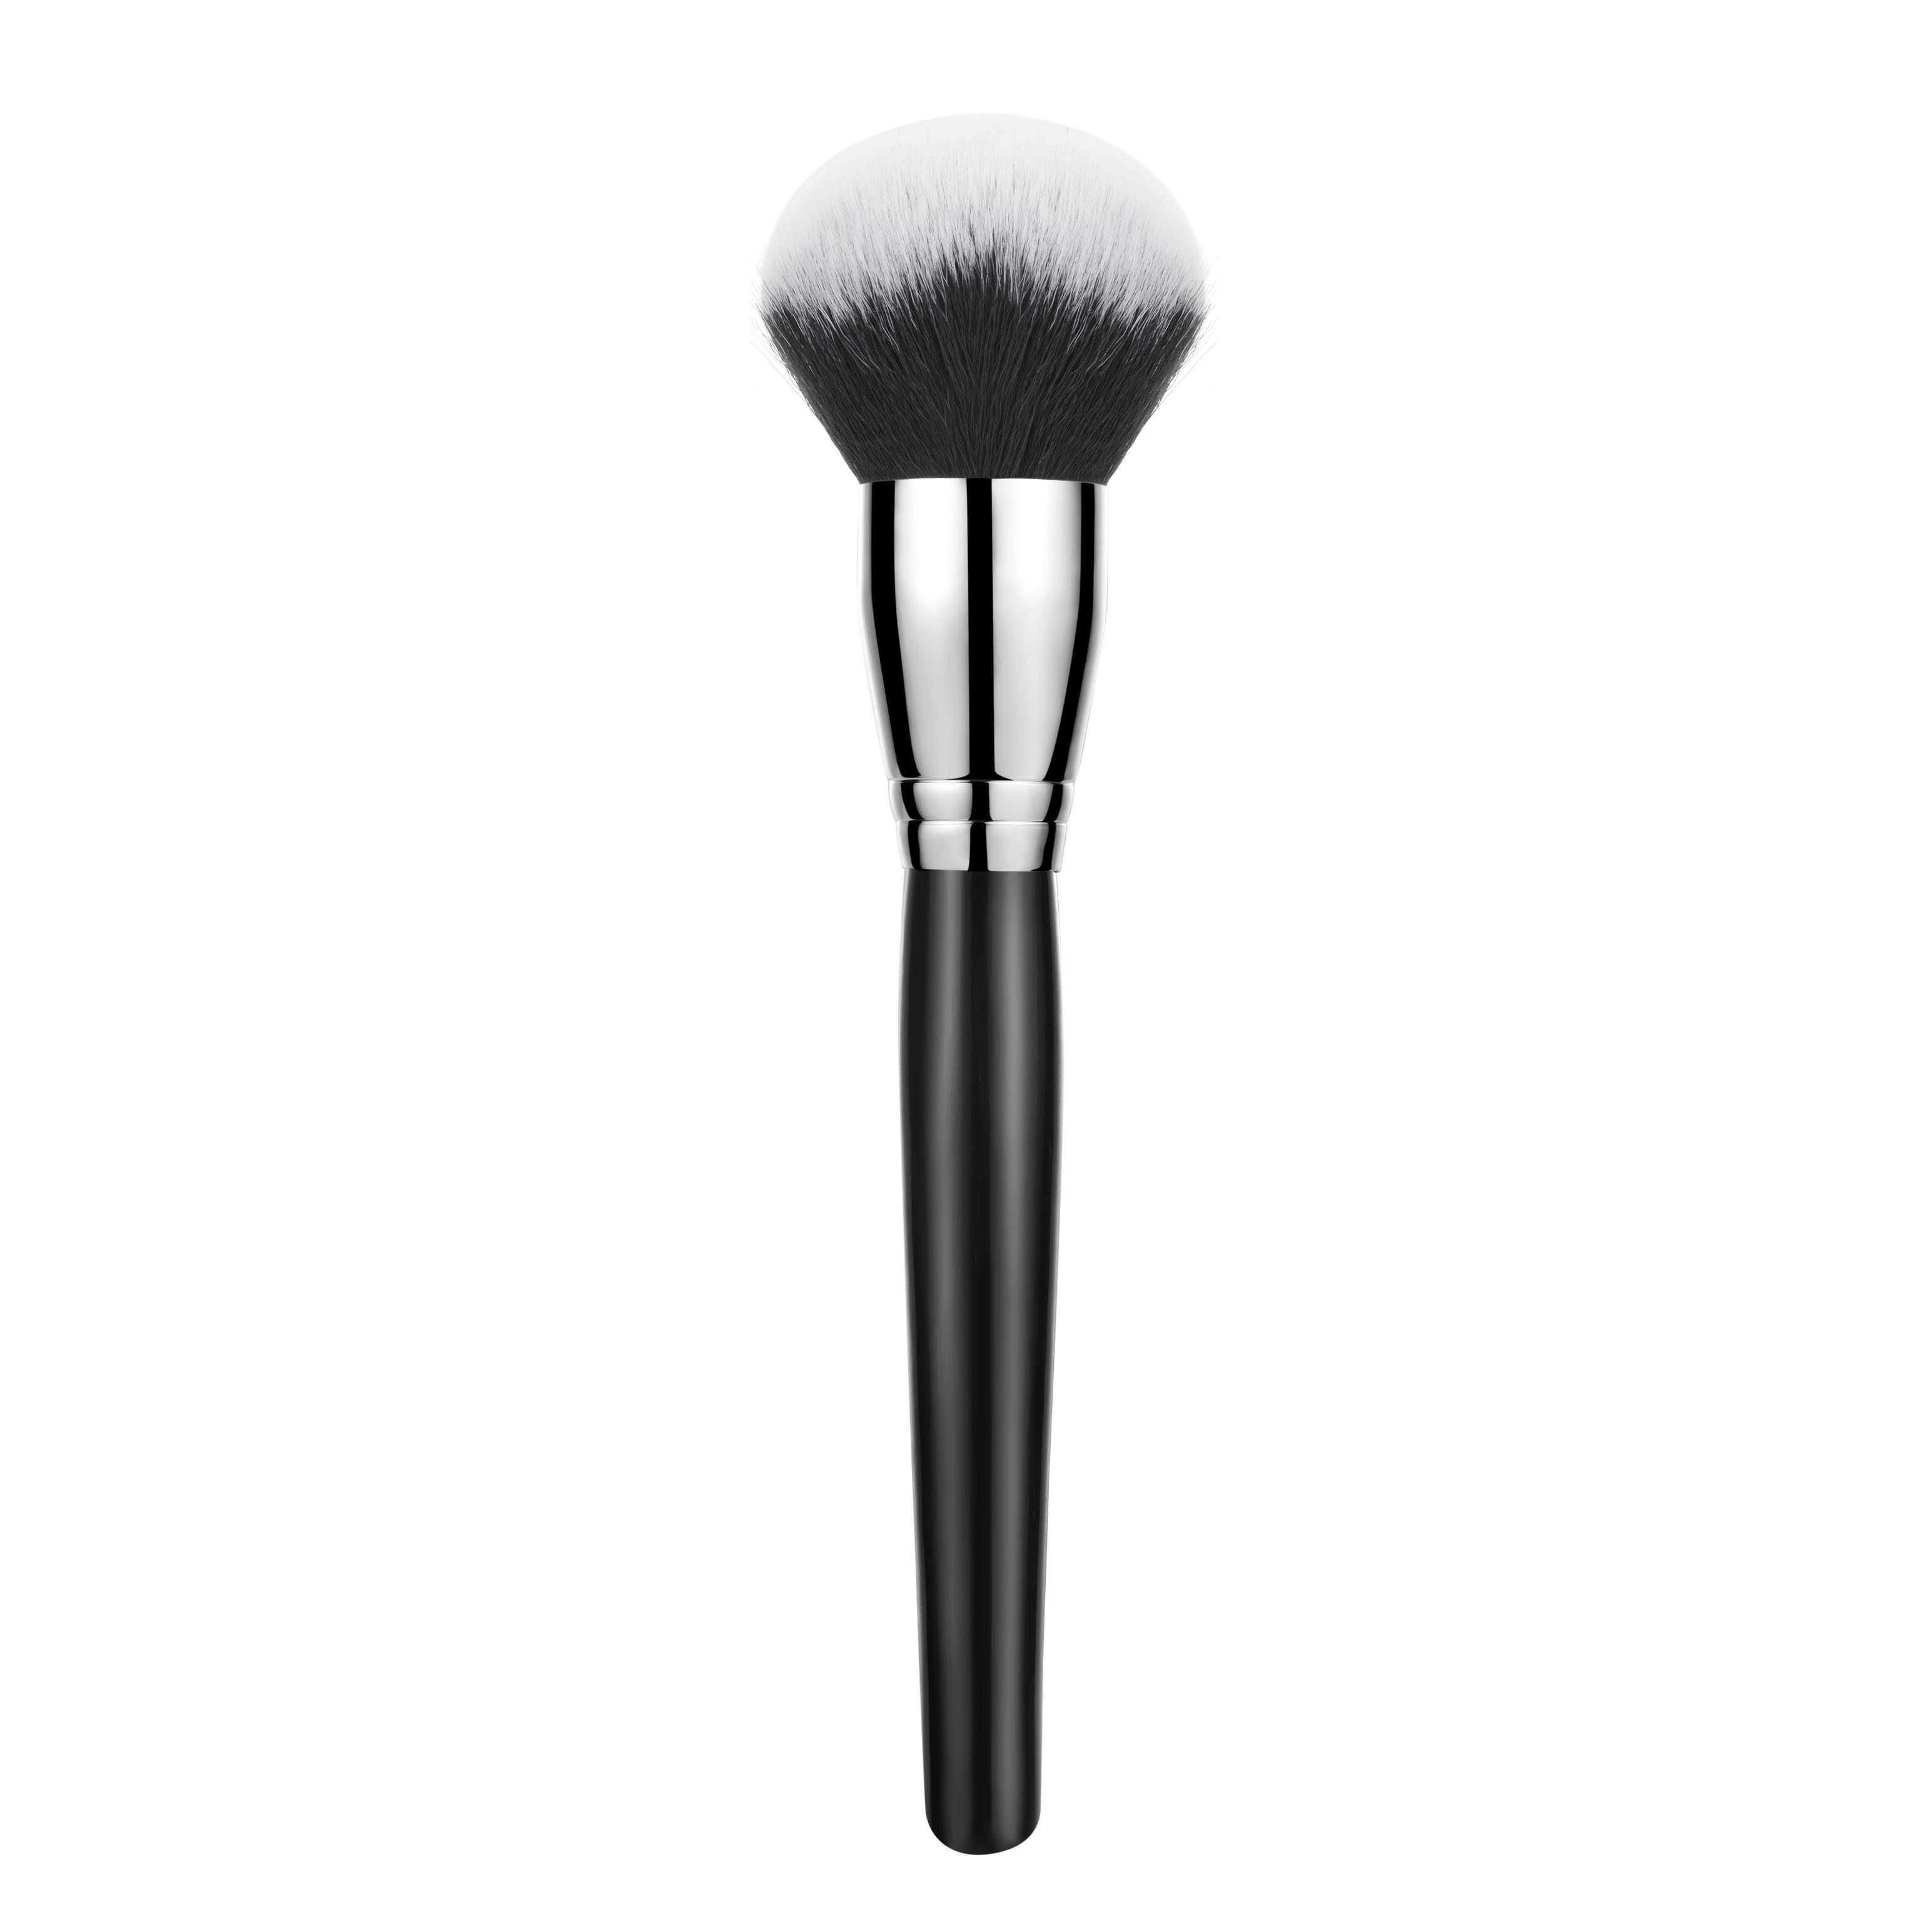 Powder Cosmetic Brush Makeup Brush with High Quality